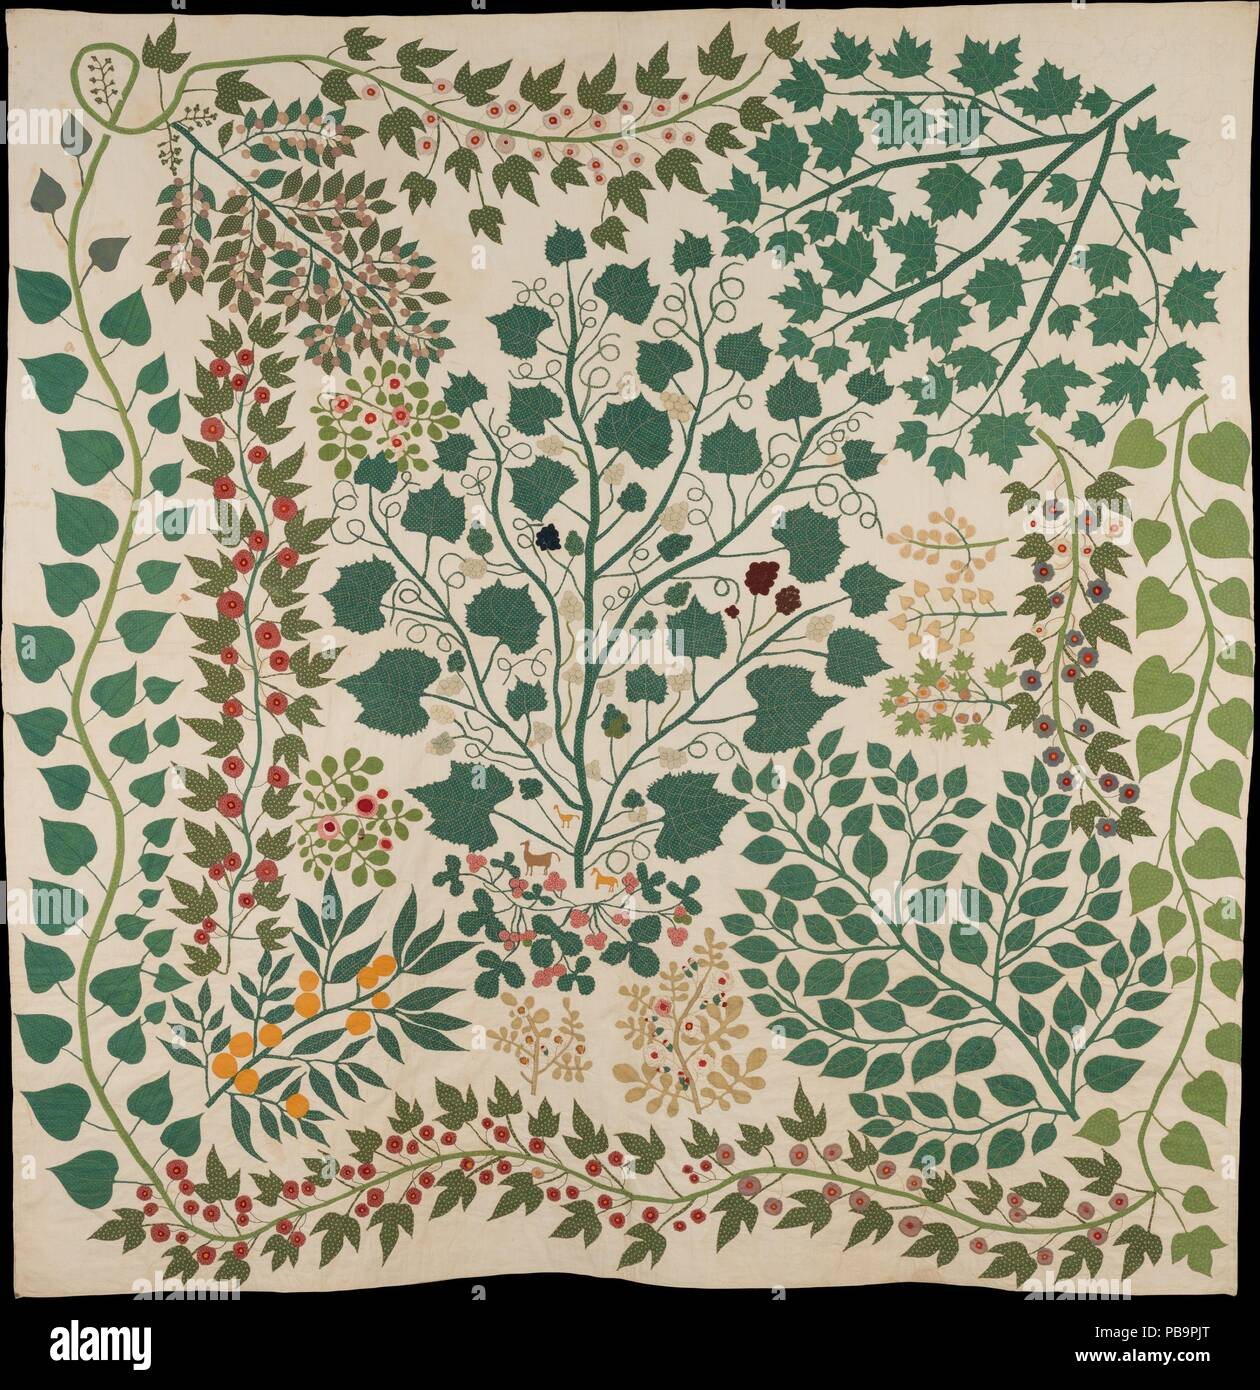 Branches and Vines Quilt. Culture: American. Dimensions: 88 × 86 in. (223.5 × 218.4 cm). Maker: Ernestine Eberhardt Zaumseil (American, 1828-1904). Date: ca. 1875.  Working in the later years of the nineteenth century, Ernestine Zaumseil created this extraordinary quilt employing the Tree of Life pattern, a design that has been popular for use on bedcovers since the seventeenth century. The first Tree of Life bedcovers, called 'palampores', were of Indian origin and featured a stylized tree bearing fantastical fruits and flowers. An Indian palampore makes up the central panel of quilt 2014.263 - Stock Image